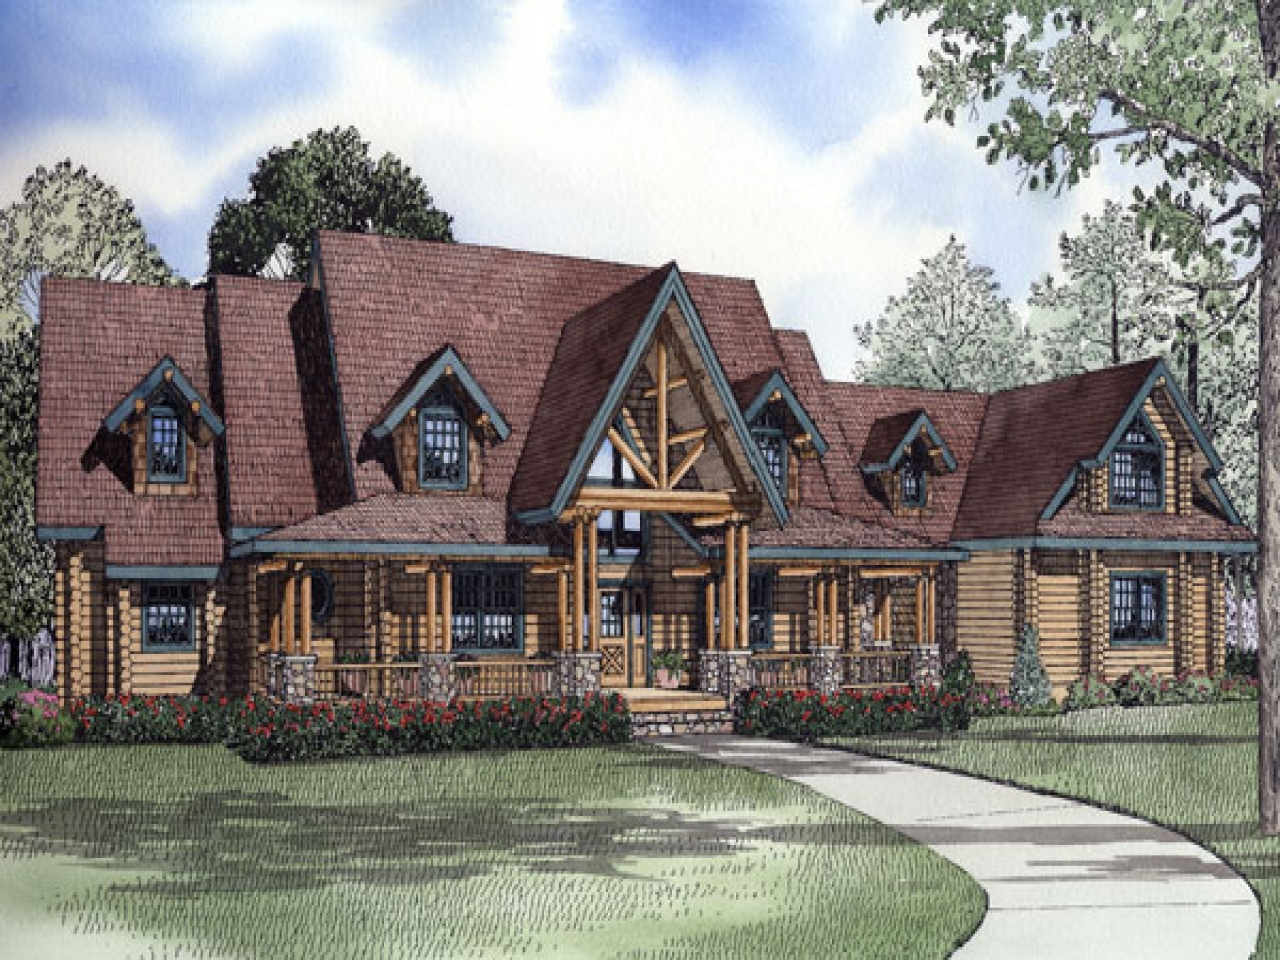 Thomas Kinkade Home Interiors Log Cabin In The Woods Luxury Log Cabin House Plans